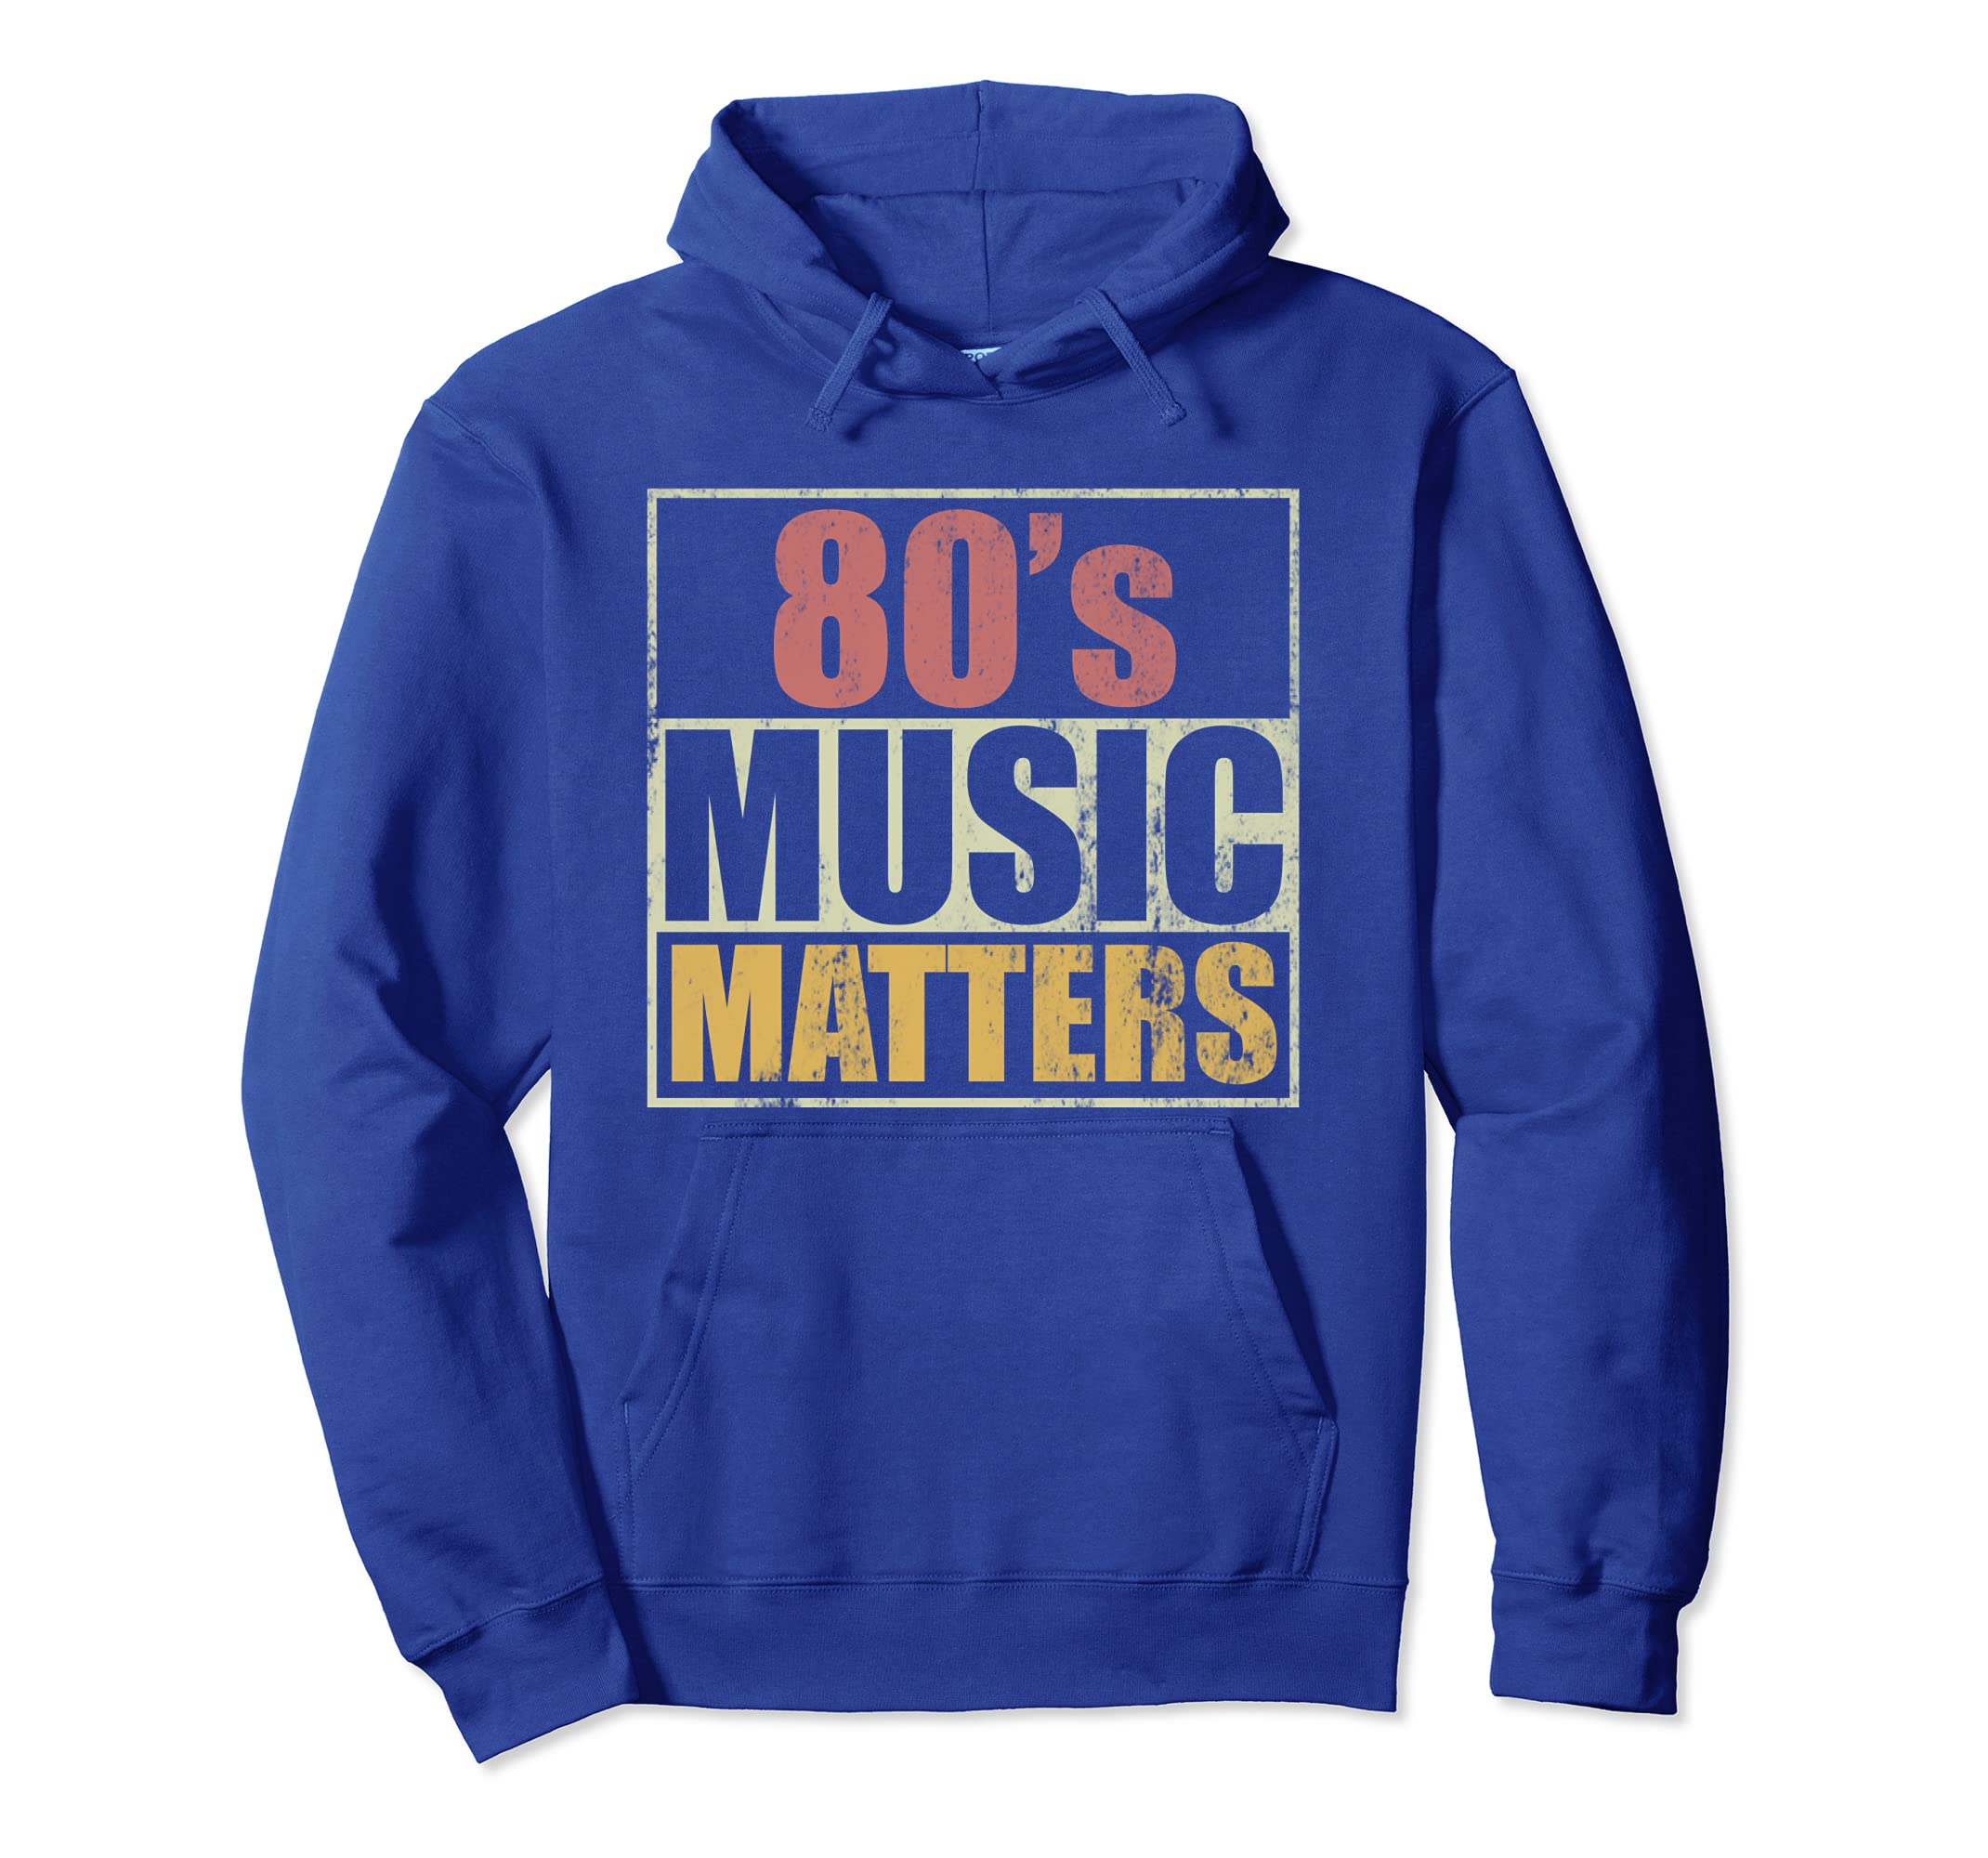 80'S MUSIC MATTERS VINTAGE RETRO PULLOVER HOODIE